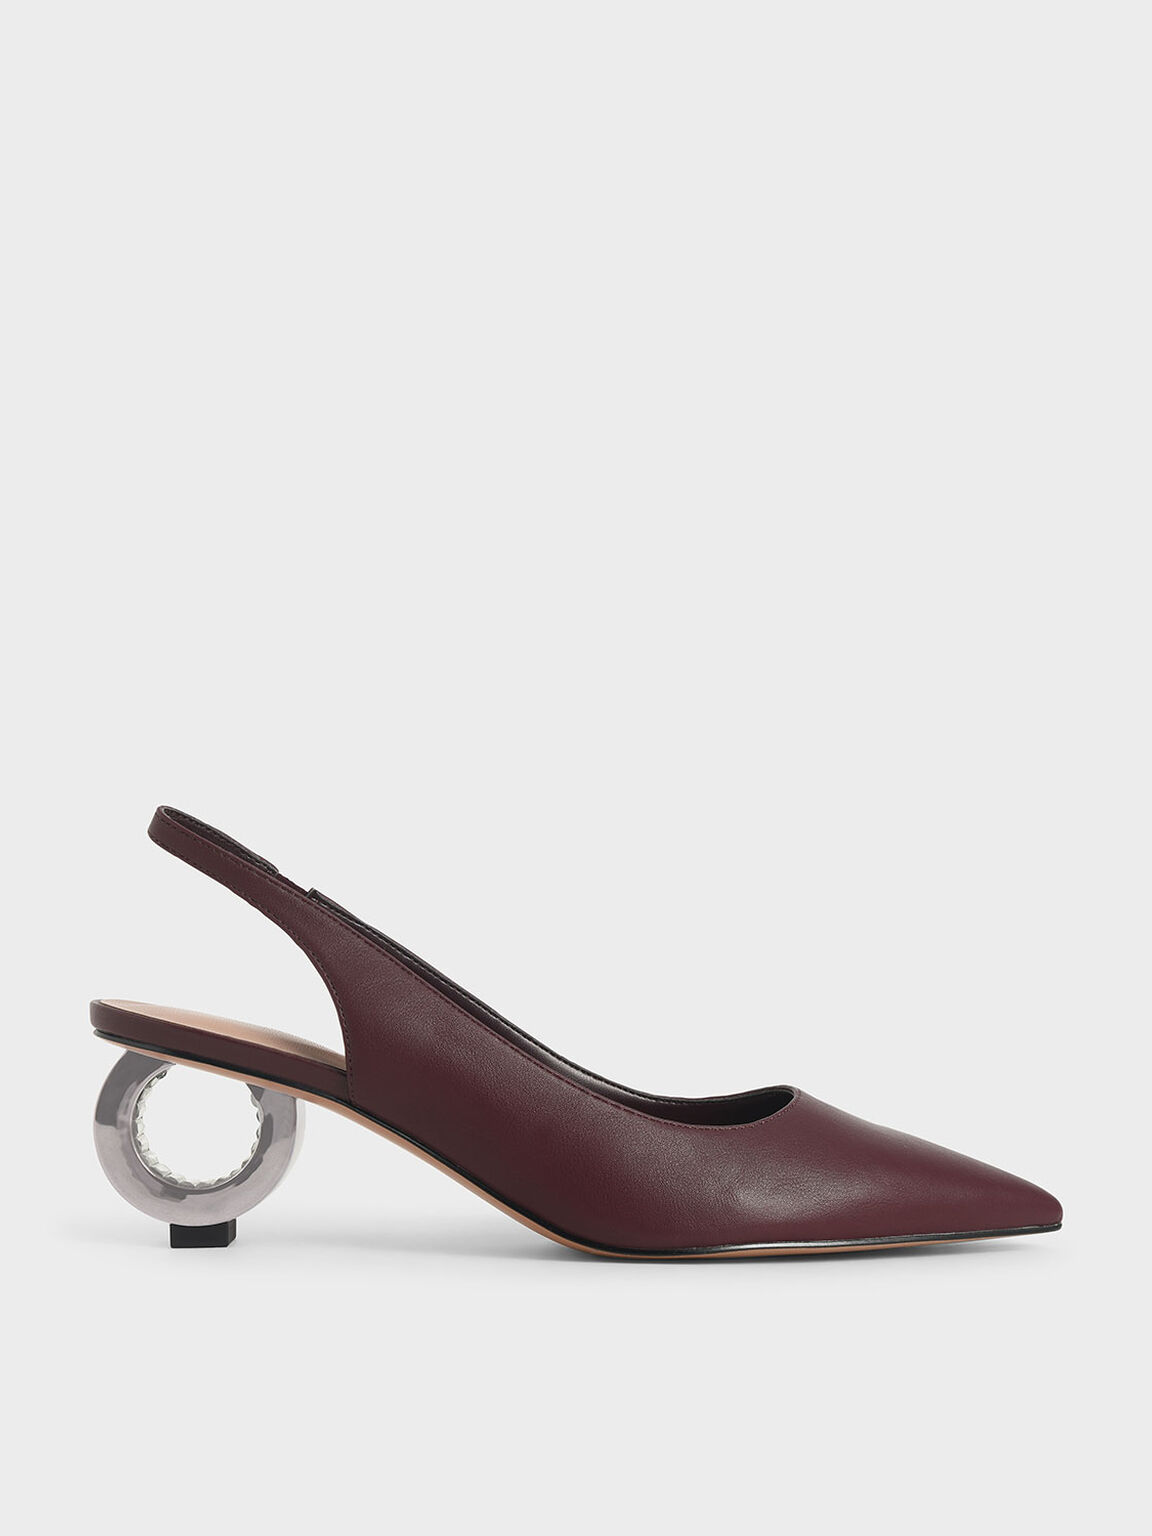 Sculptural Chrome Heel Slingback Pumps, Prune, hi-res